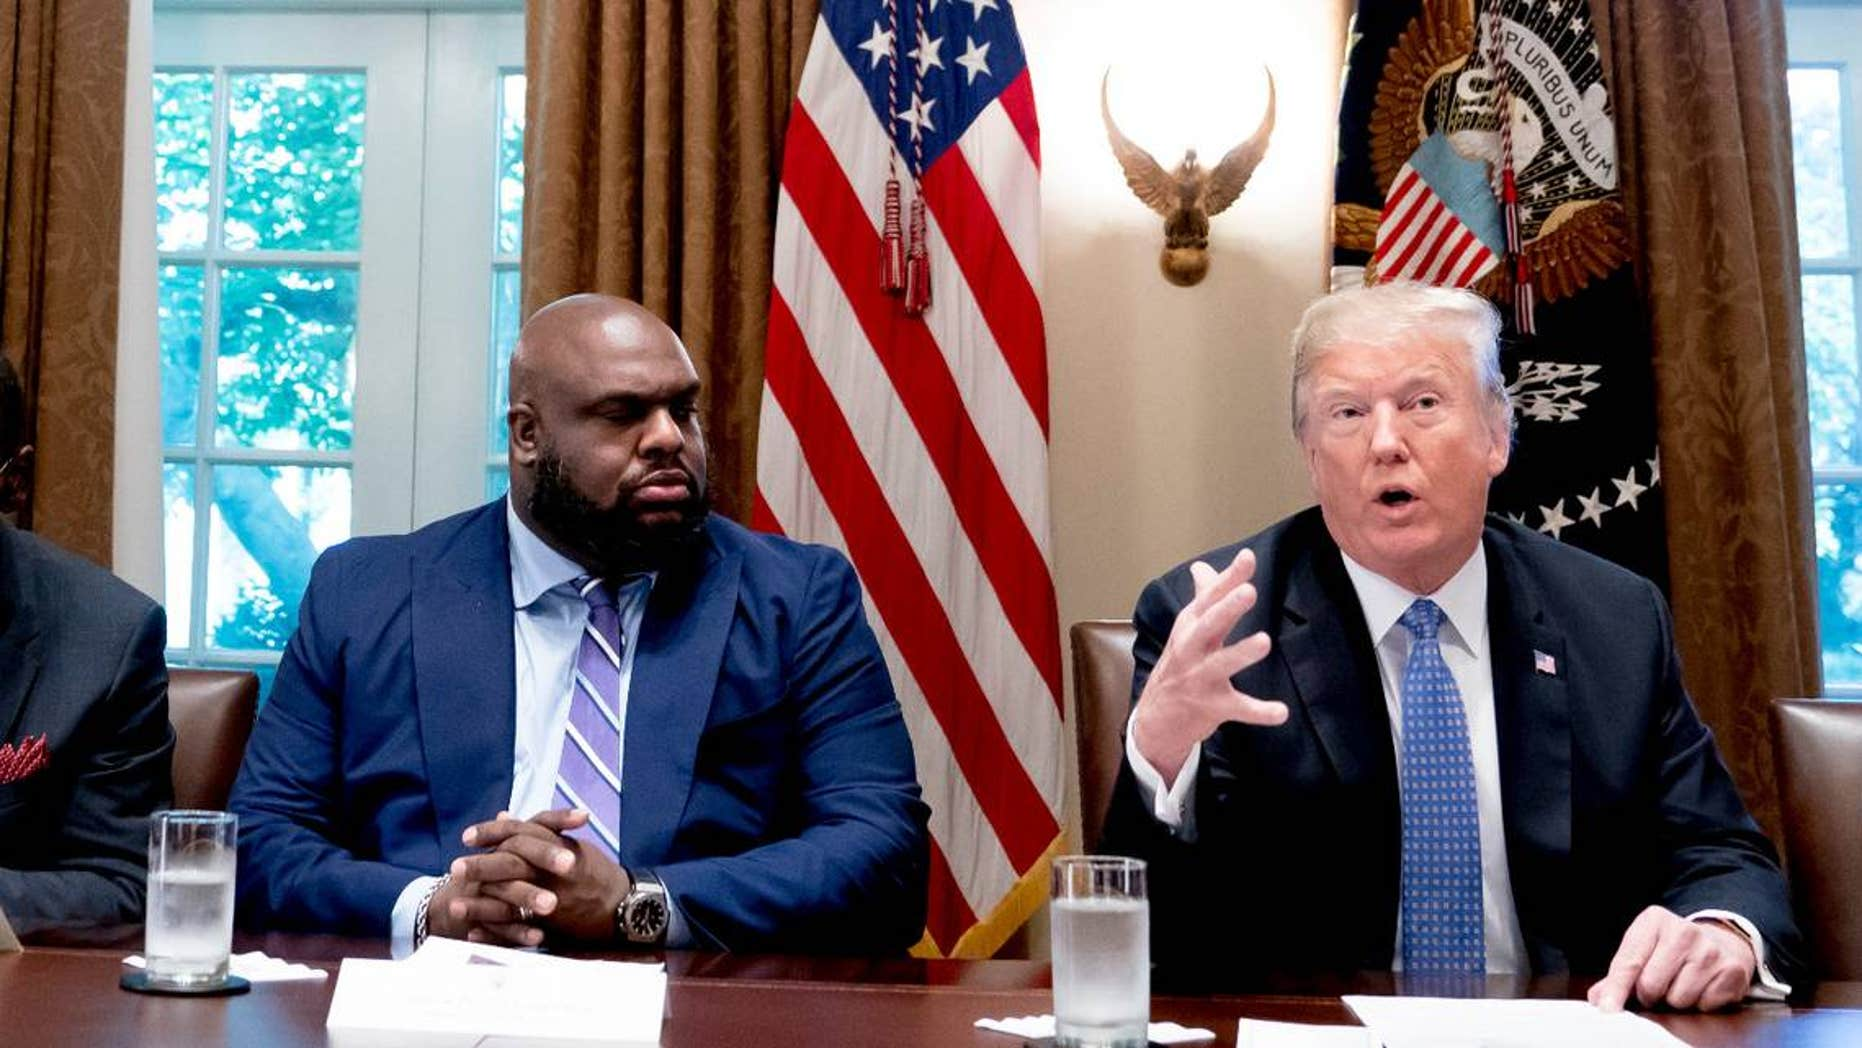 The Rev. John Gray, pastor of Relentless Church in Greenville, S.C., and other religious leaders meet with President Trump at the White House, Aug. 1, 2018.